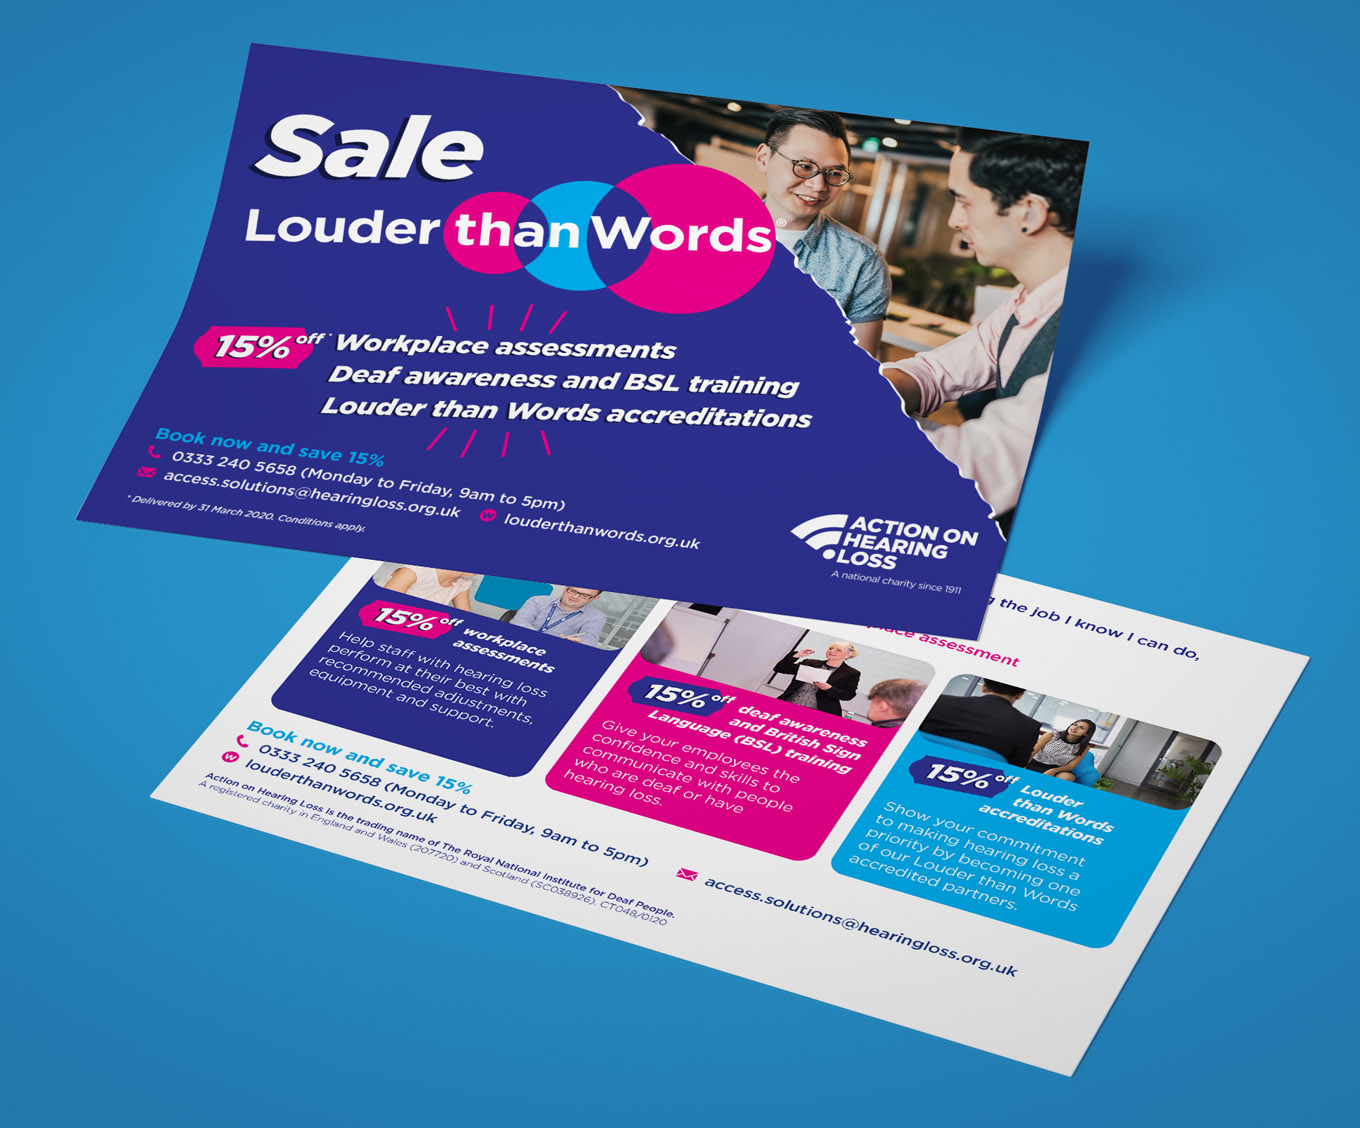 louder than words campaign action on hearing loss